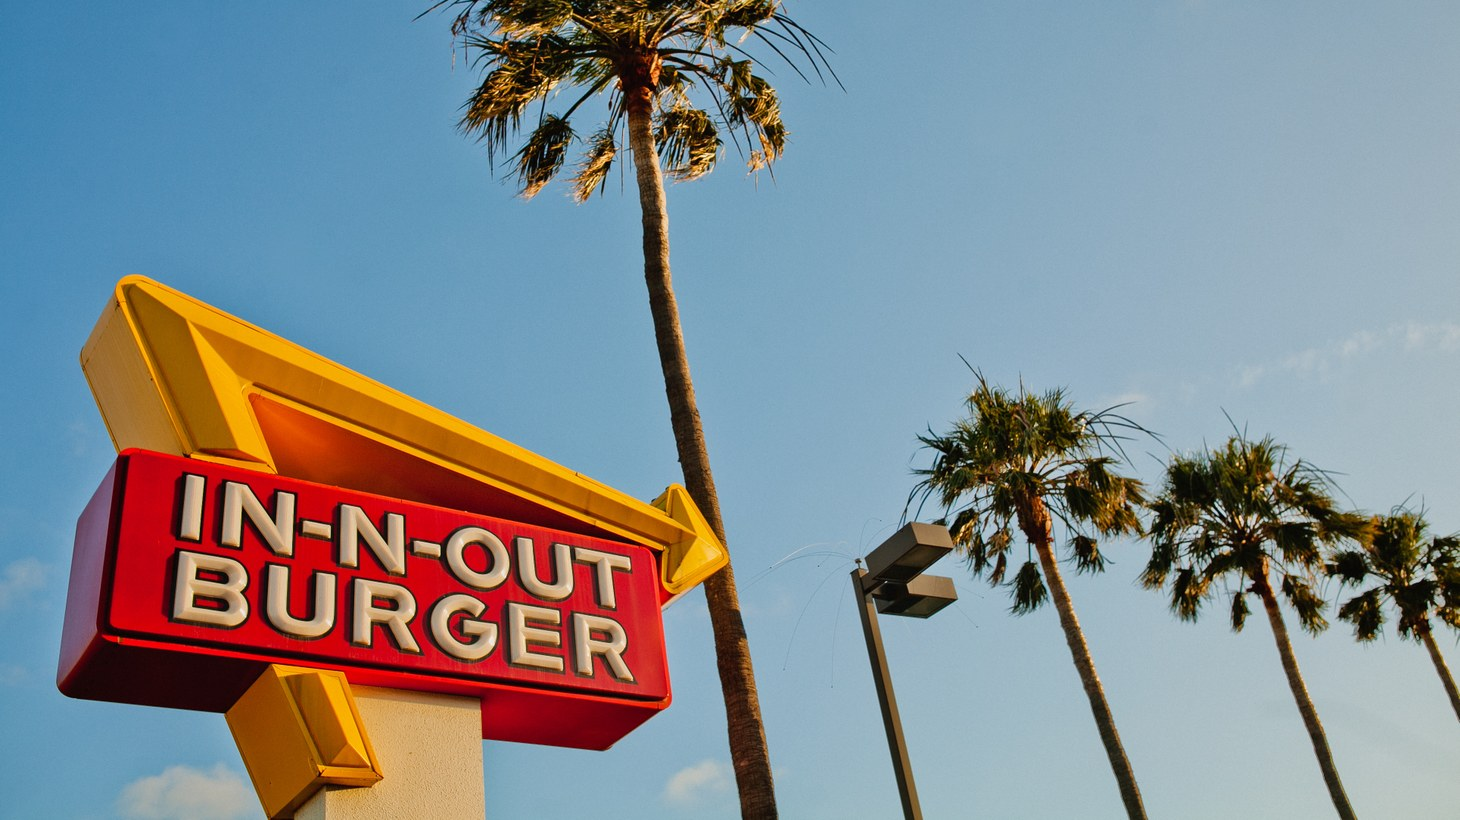 """In-N-Out Burger is taking an Australian food delivery joint called In & Out Aussie Burgers to court, accusing the alleged pretender to ride on the coattails of the Southern California company. """"If you have a look at their menu, it's pretty similar in broad terms to what the original In-N-Out offers. It's got burgers, it's got fries, it's got onion rings — controversially, thick shakes,"""" says Georgina Mitchell, a court reporter for the Sydney Morning Herald."""